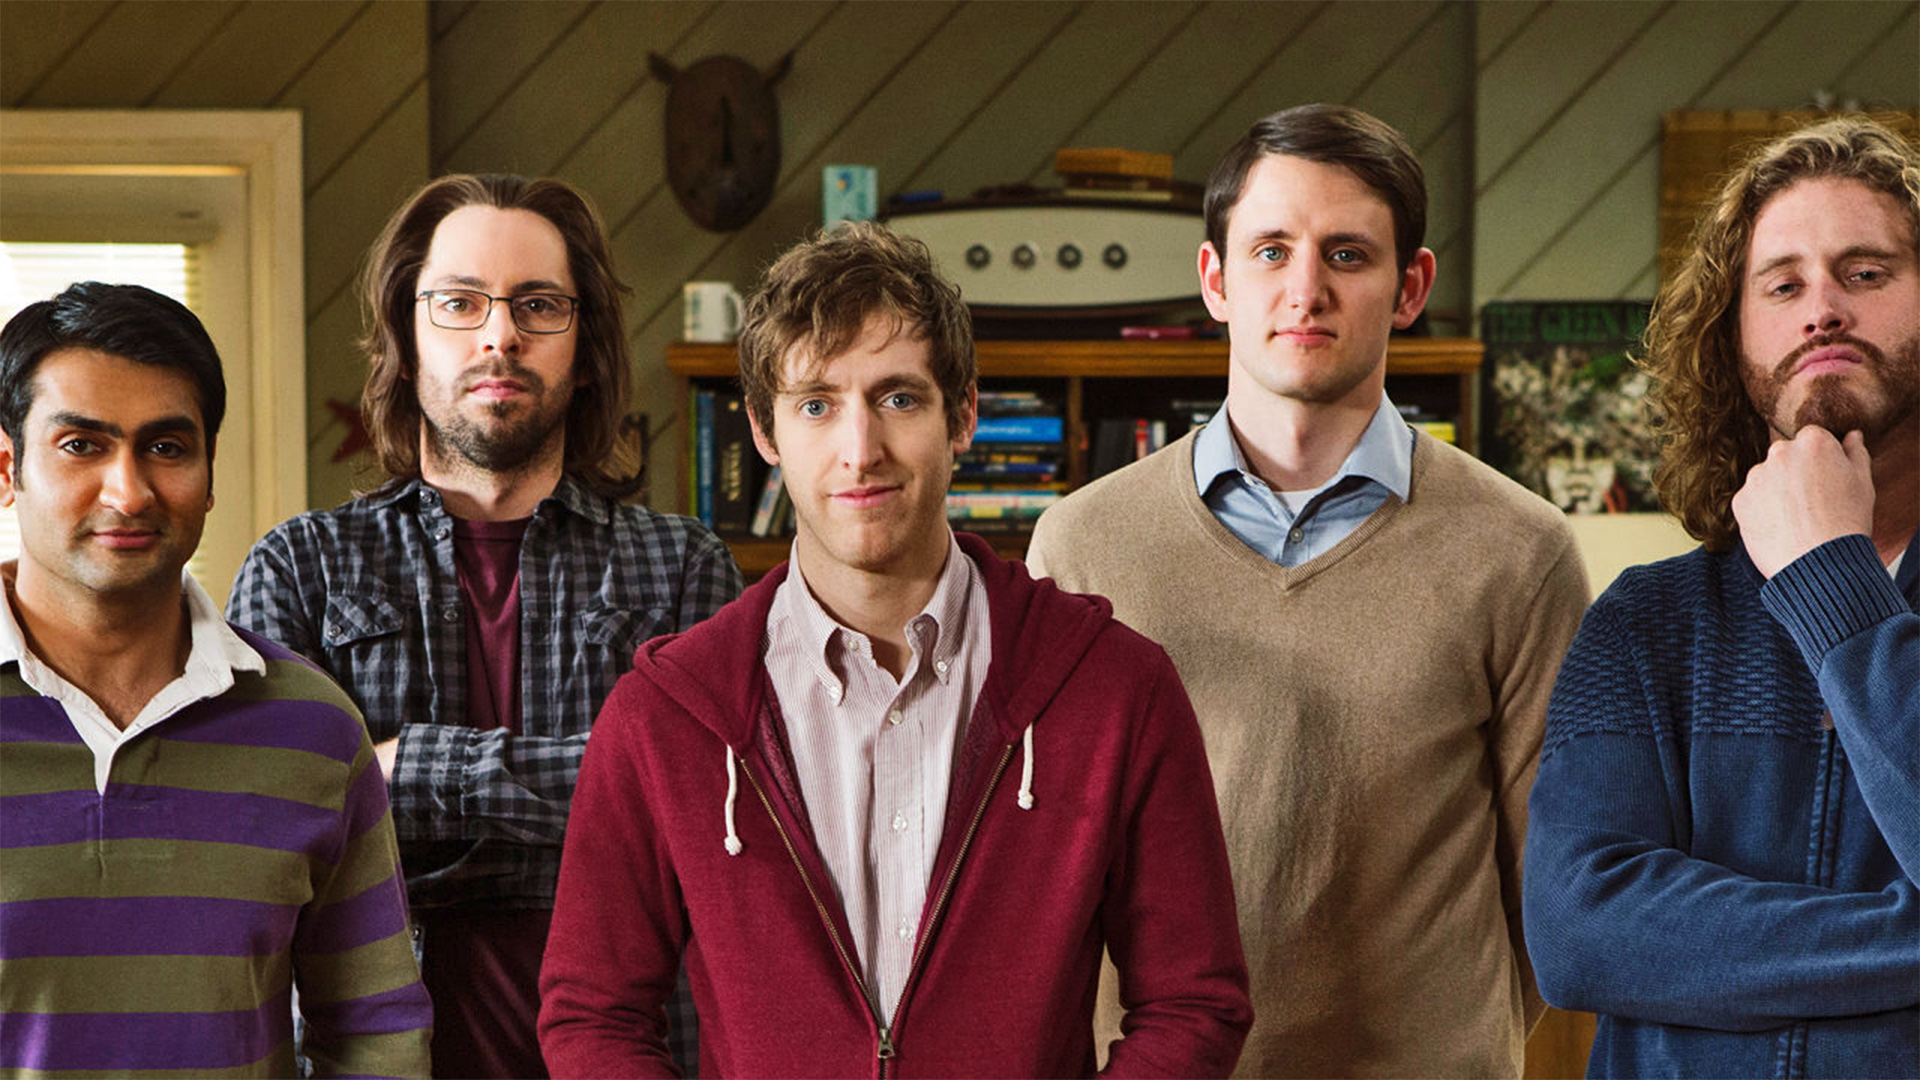 HBO's Silicon Valley and Stereotyping - A Diversity Check on HBO's 'Silicon Valley,' in Data